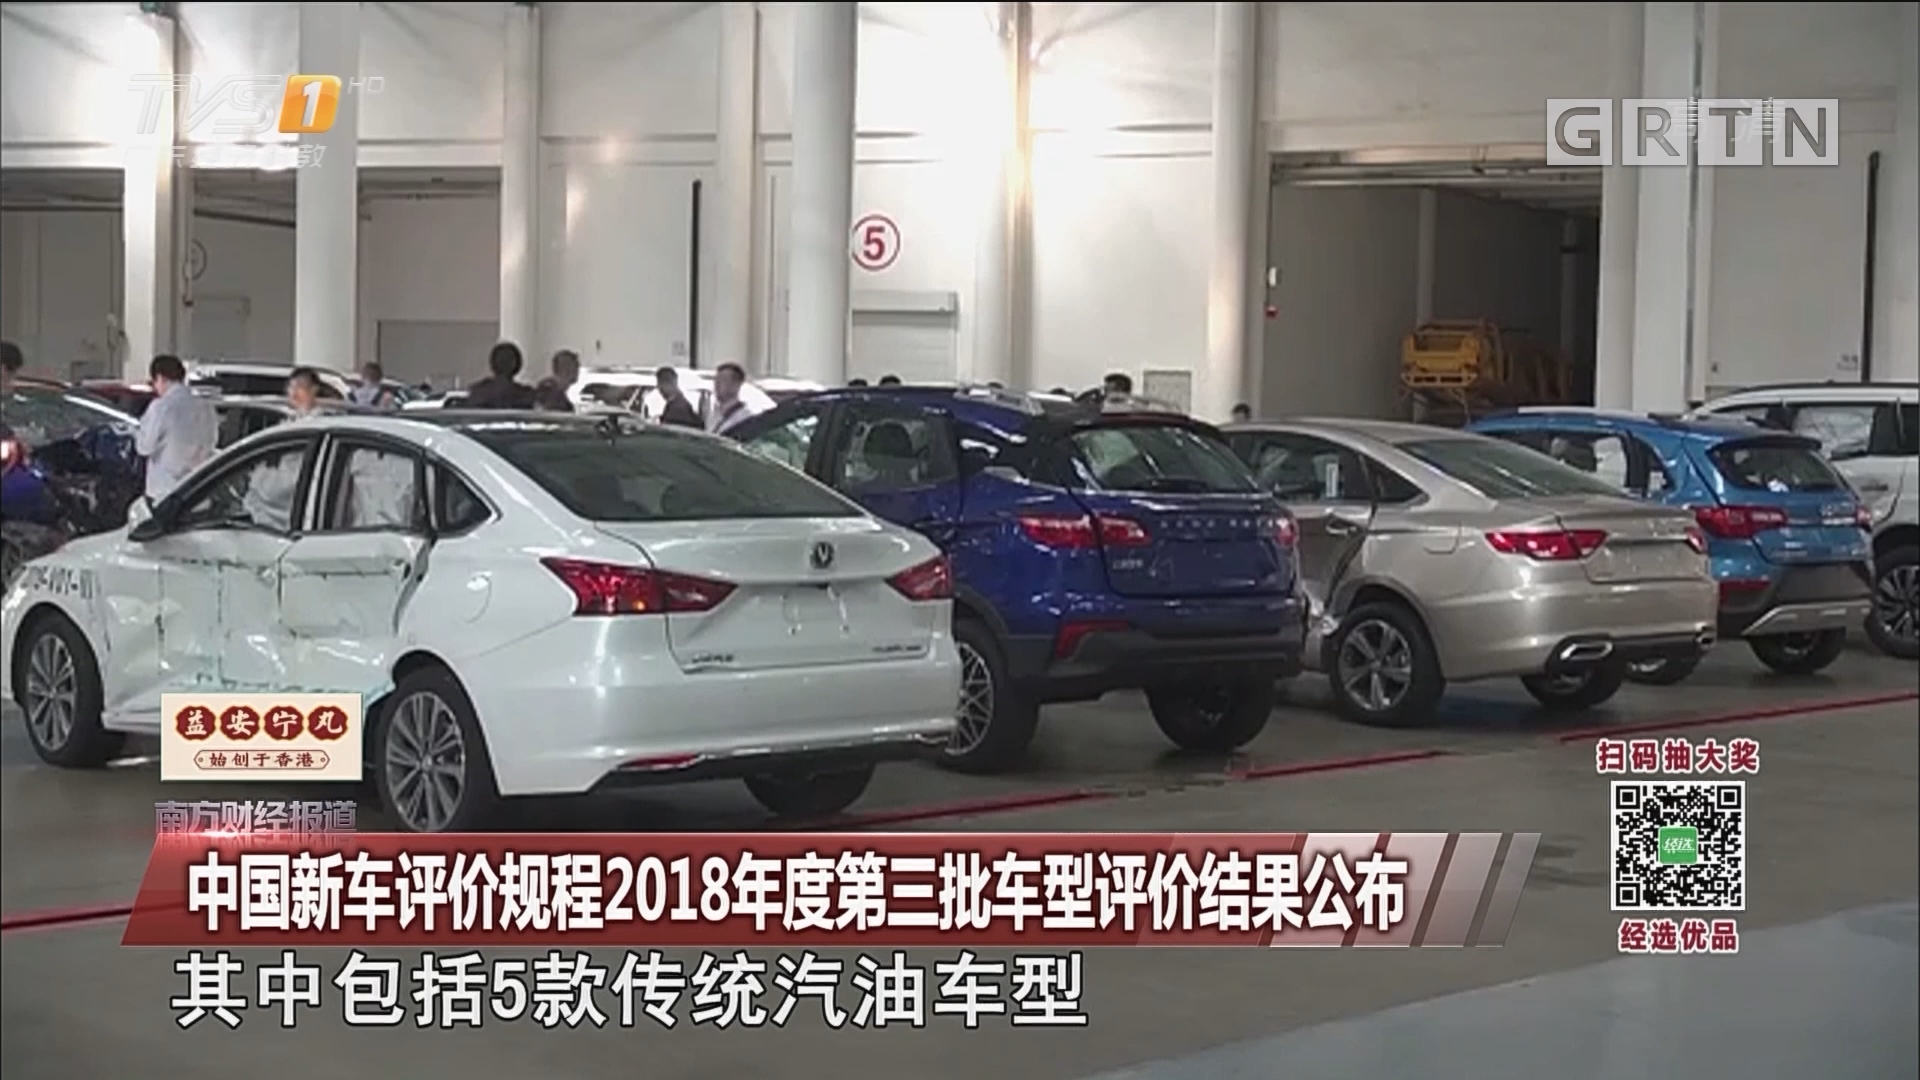 中国新车评价规程2018年度第三批车型评价结果公布